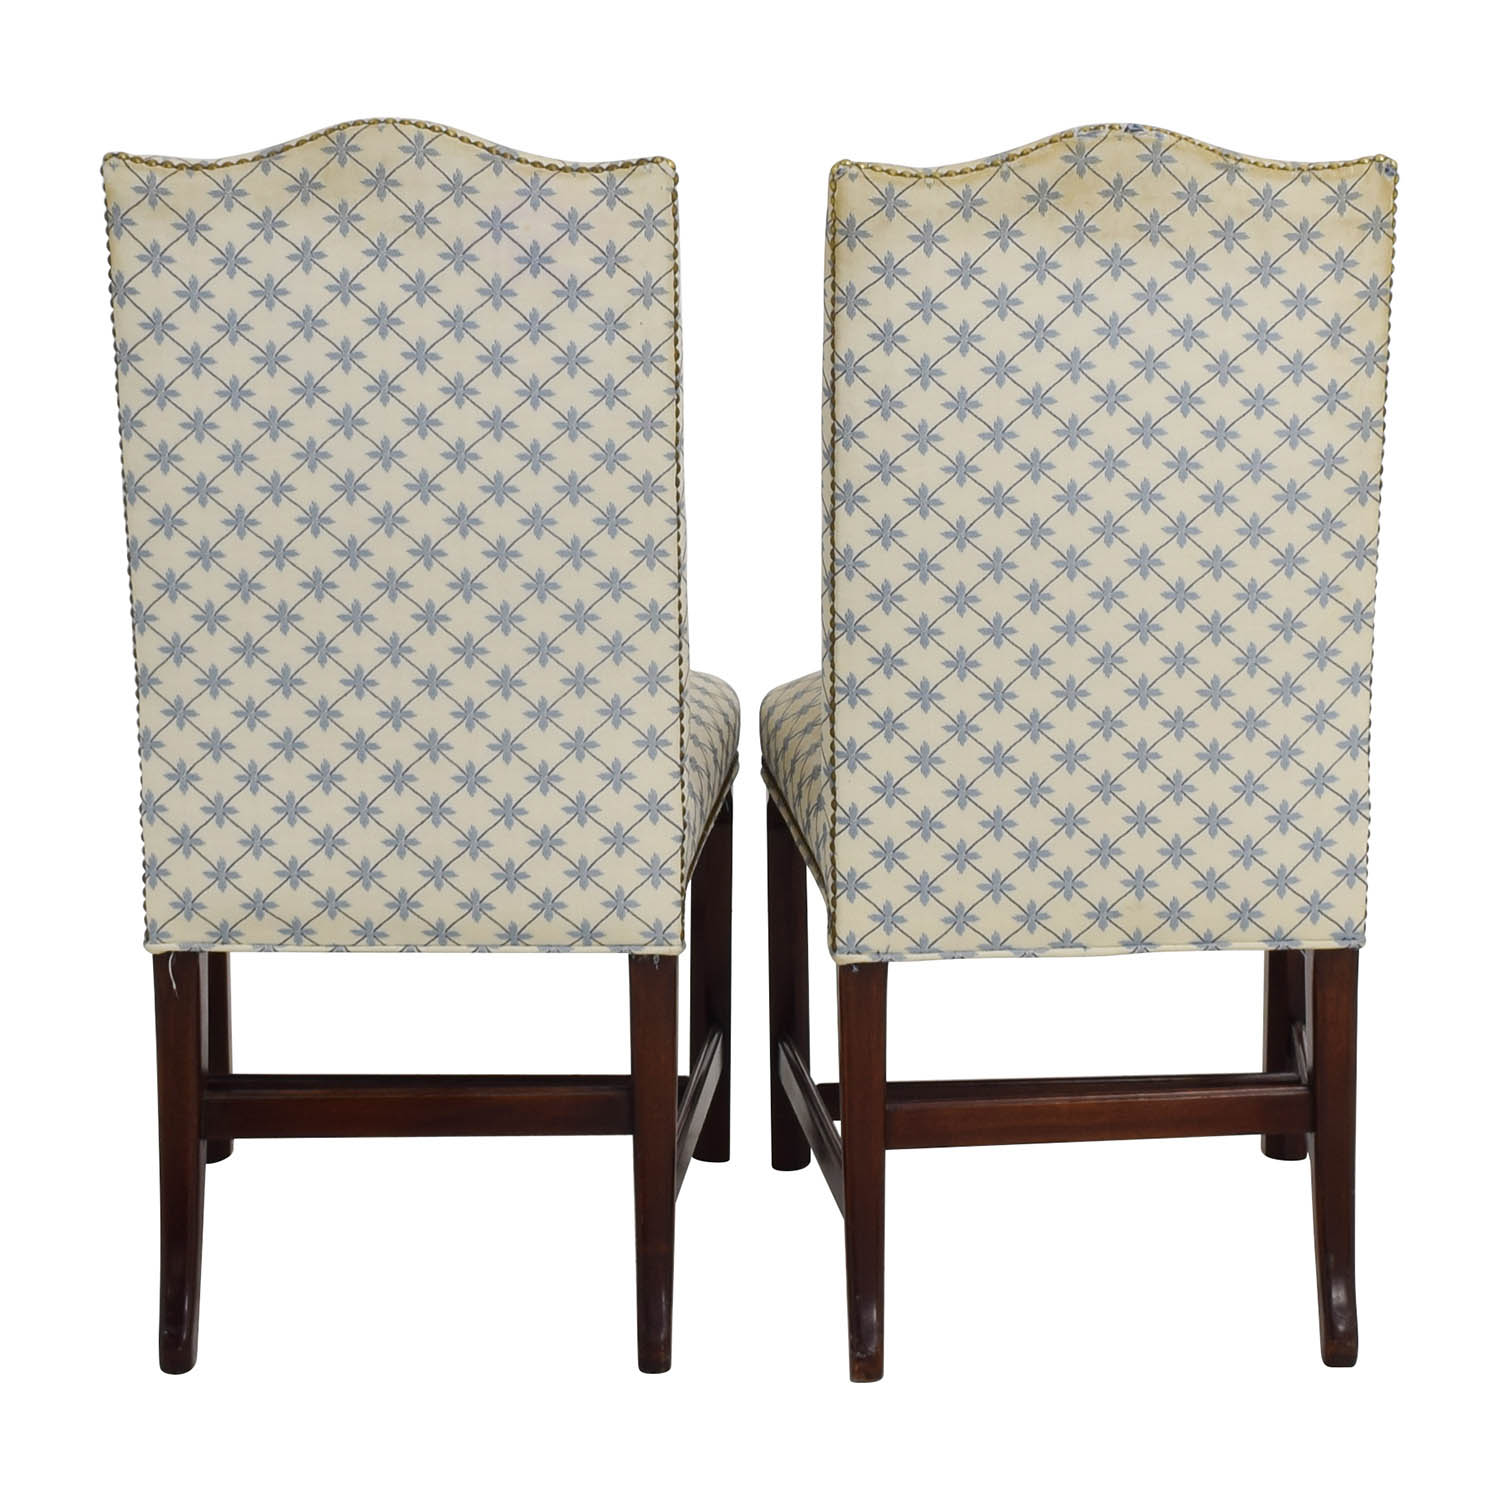 88 off hickory chair hickory chair bespoke upholstered occasional